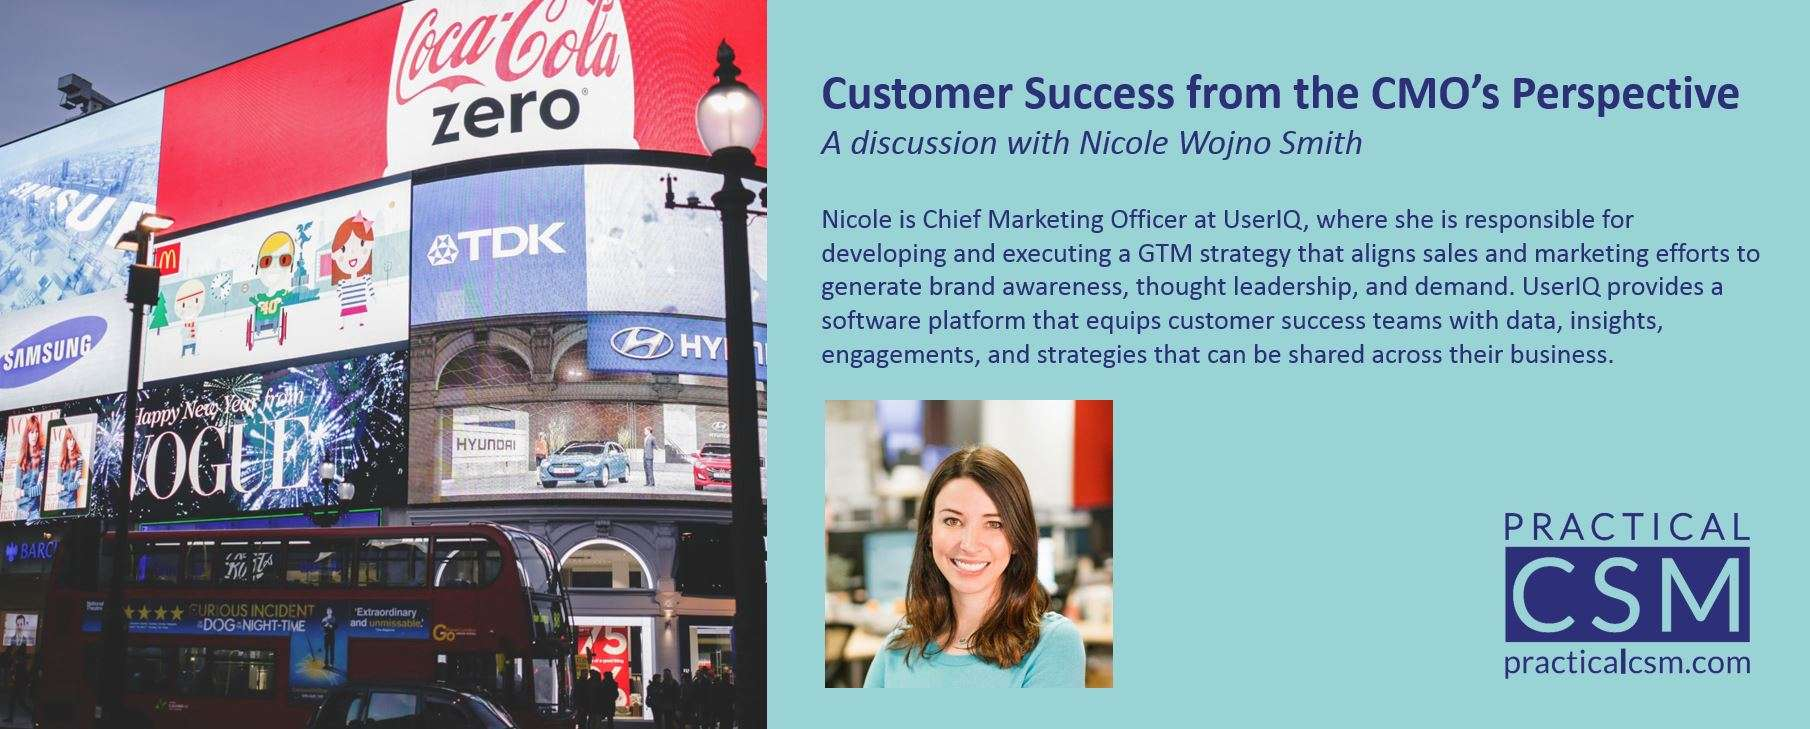 Customer Success from the CMO's Perspective